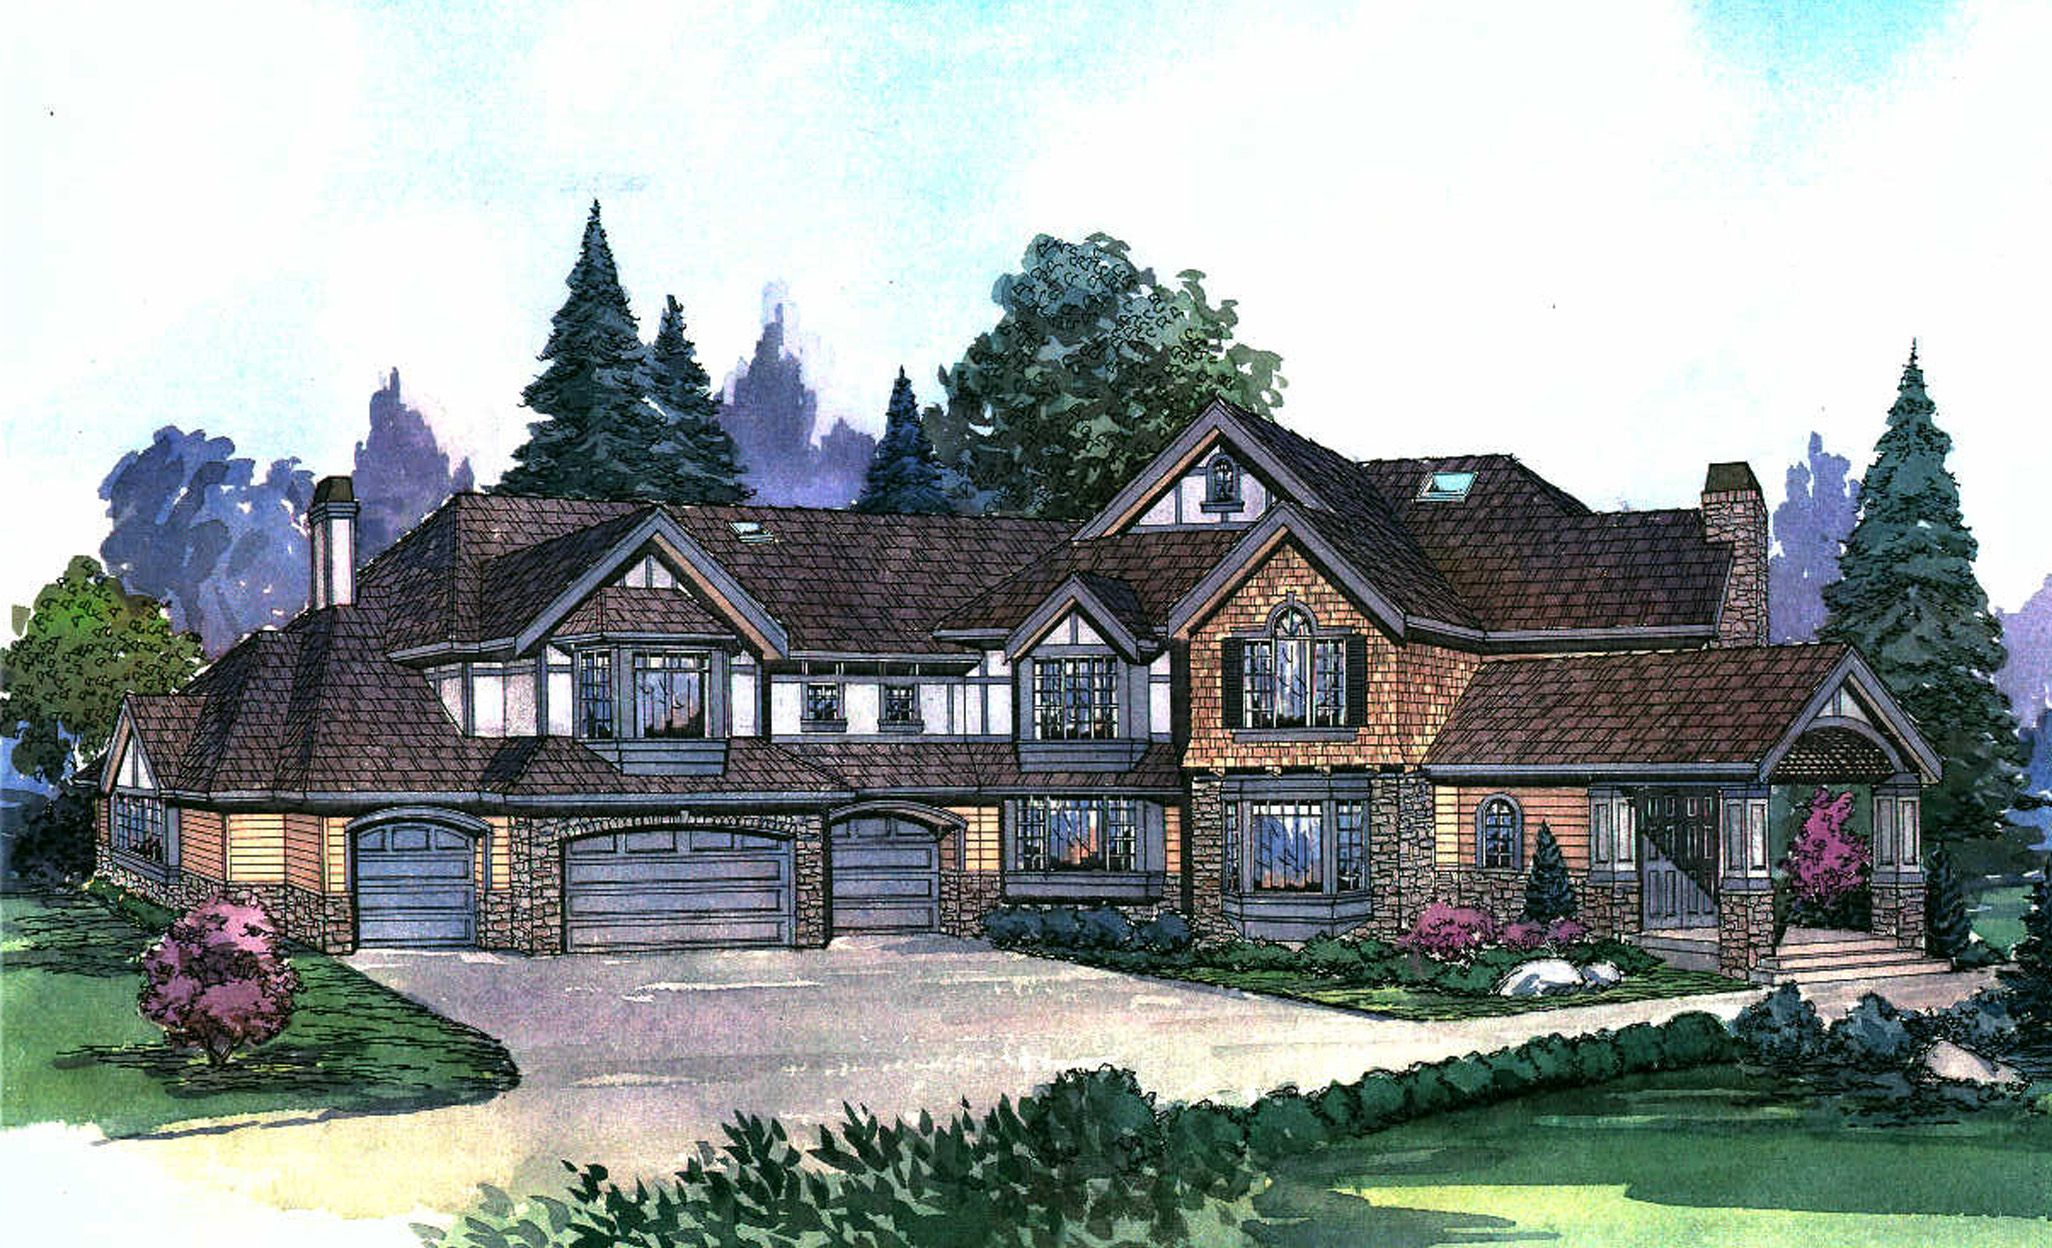 Plan 2309JD Luxury Craftsman House Plan